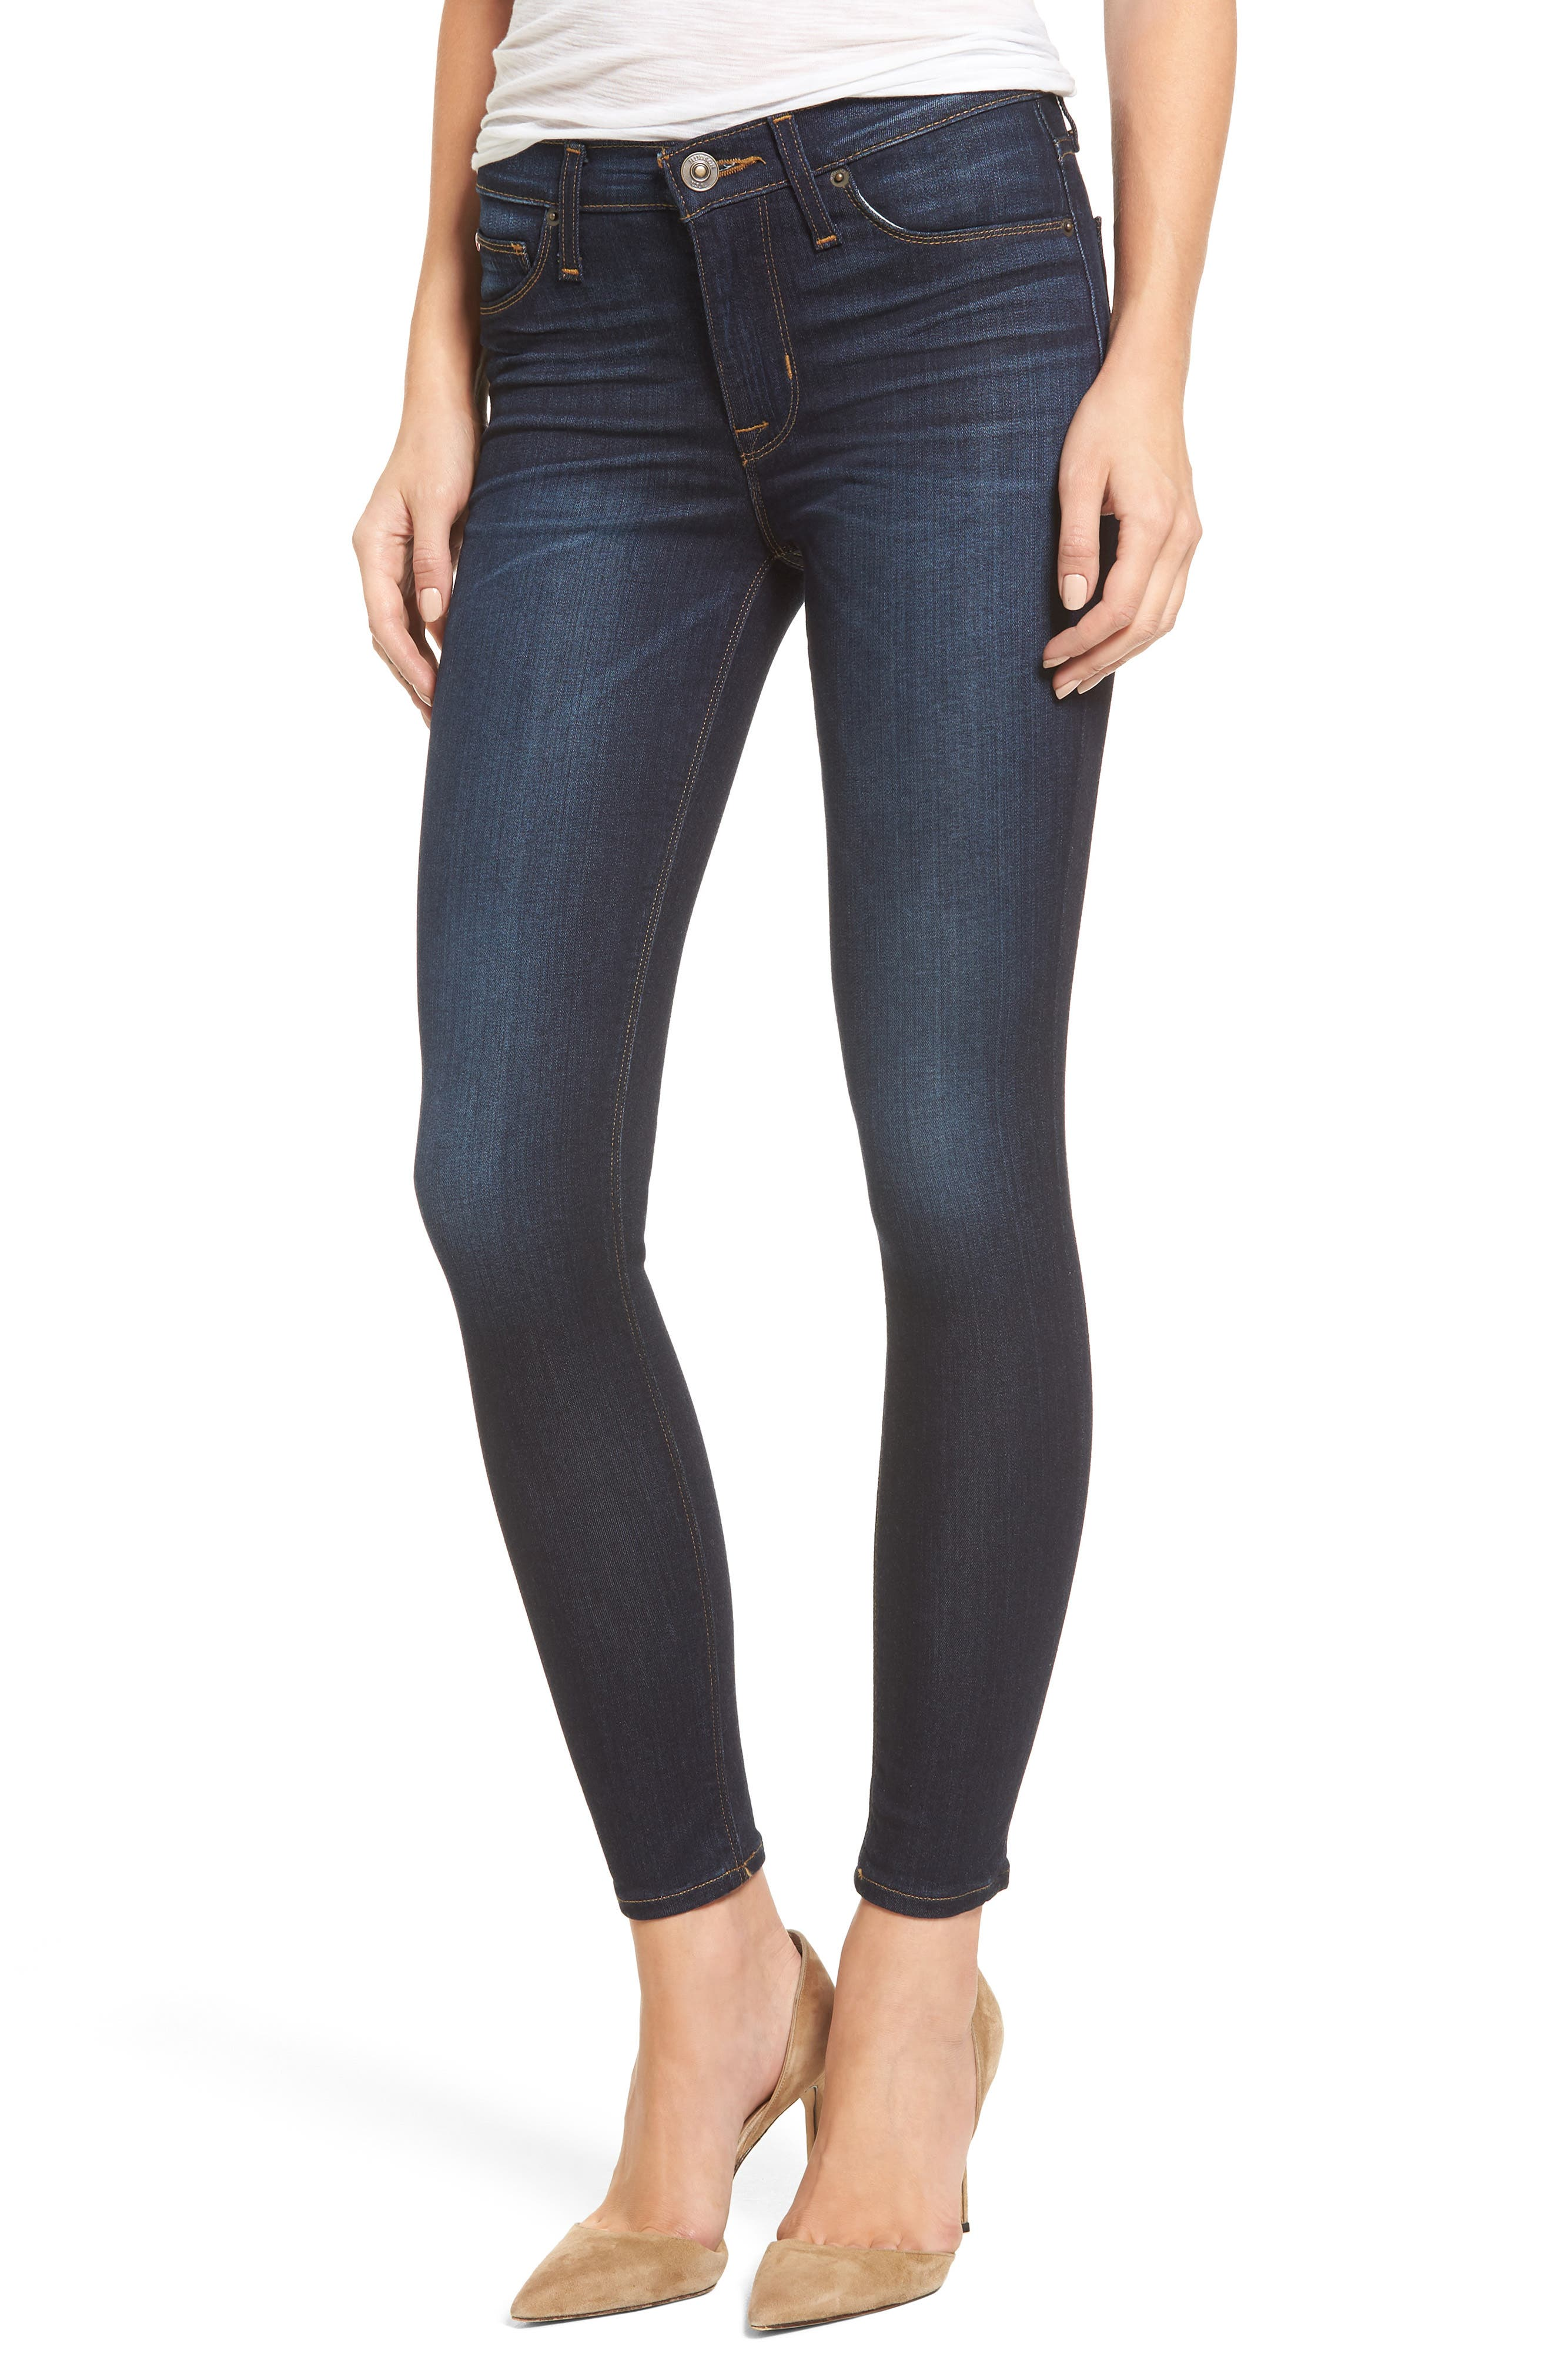 Main Image - Hudson Jeans 'Nico' Ankle Super Skinny Jeans (Electrify)